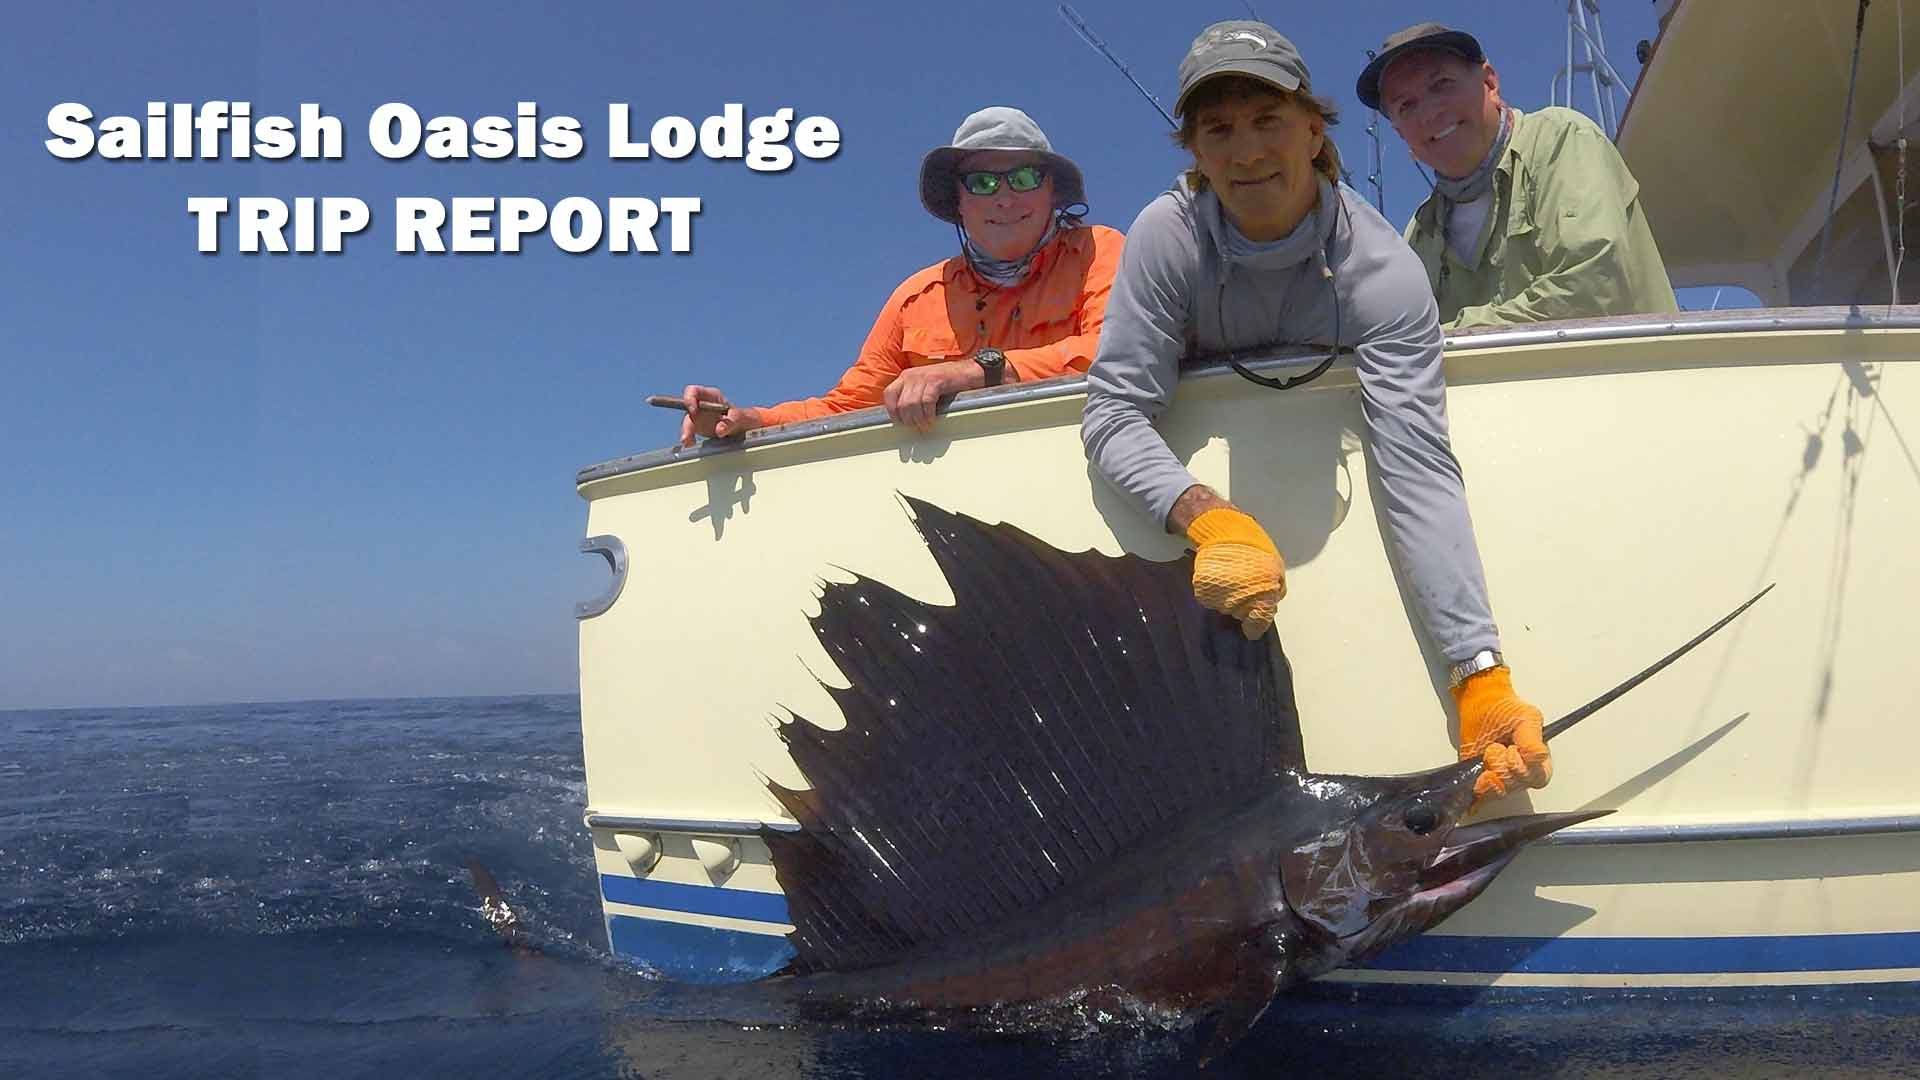 Sailfish Oasis Lodge